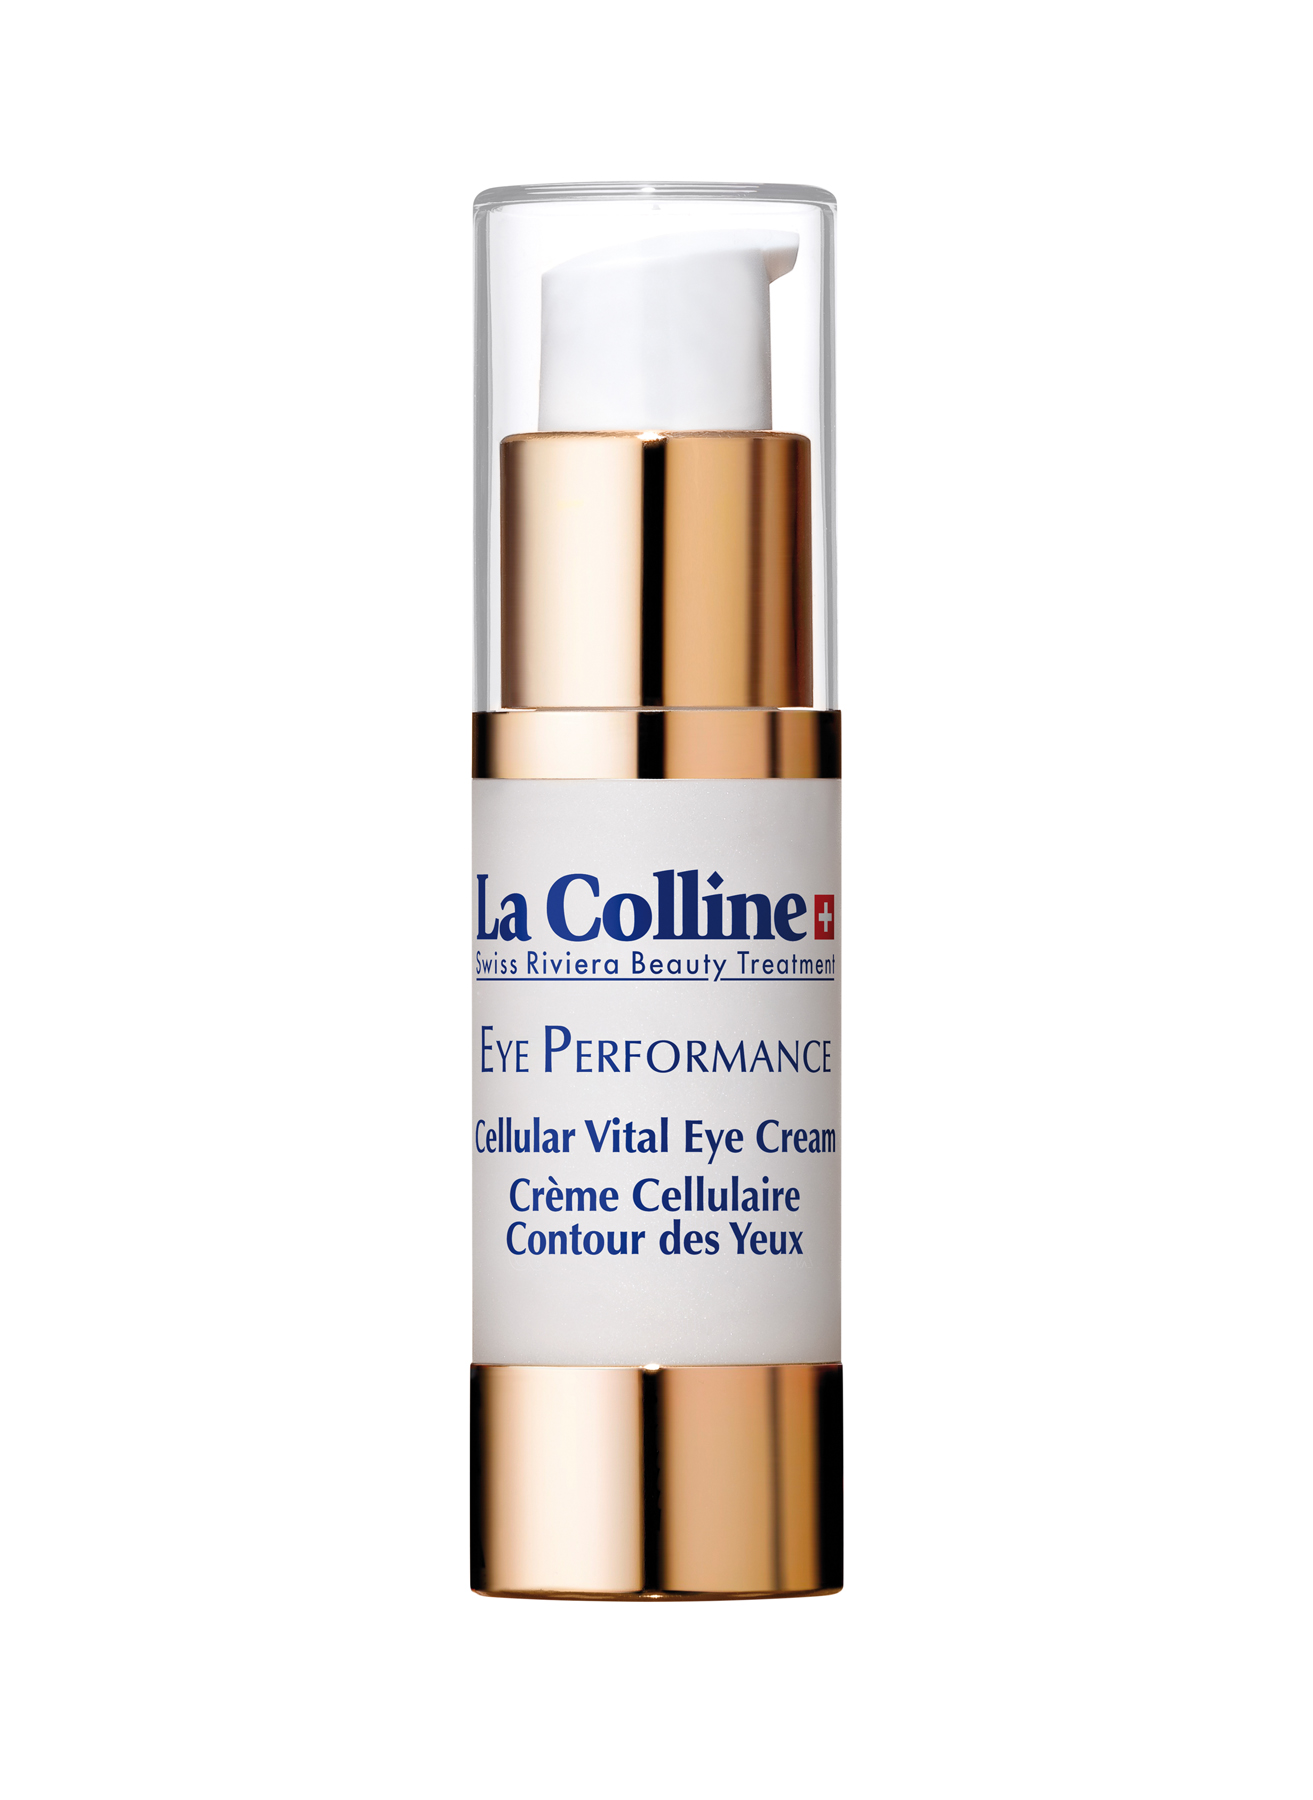 La Colline LC Cellular Vital Eye Cream 15 ml Göz Kremi 5002354149001 Ürün Resmi